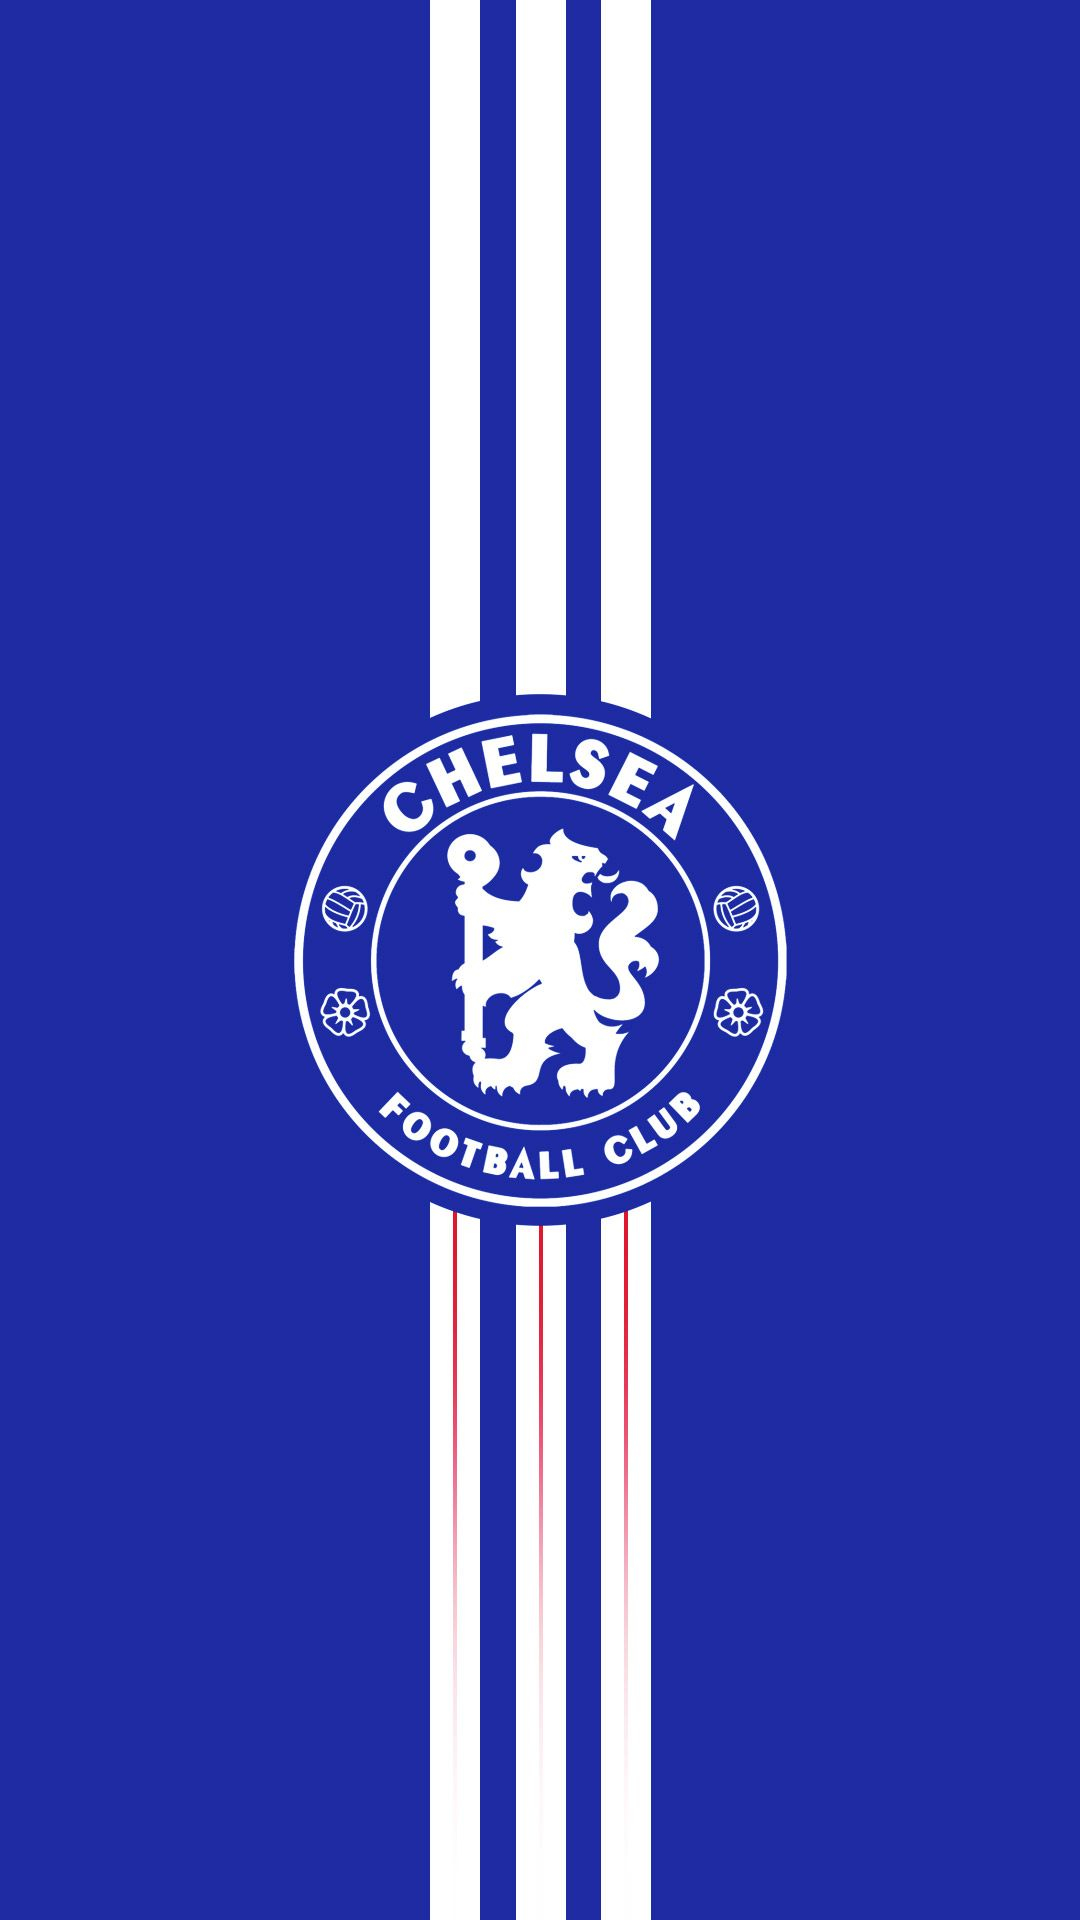 Hd Wallpapers For Mobile 1080x1920 With Quotes Chelsea Iphone Wallpapers Pixelstalk Net